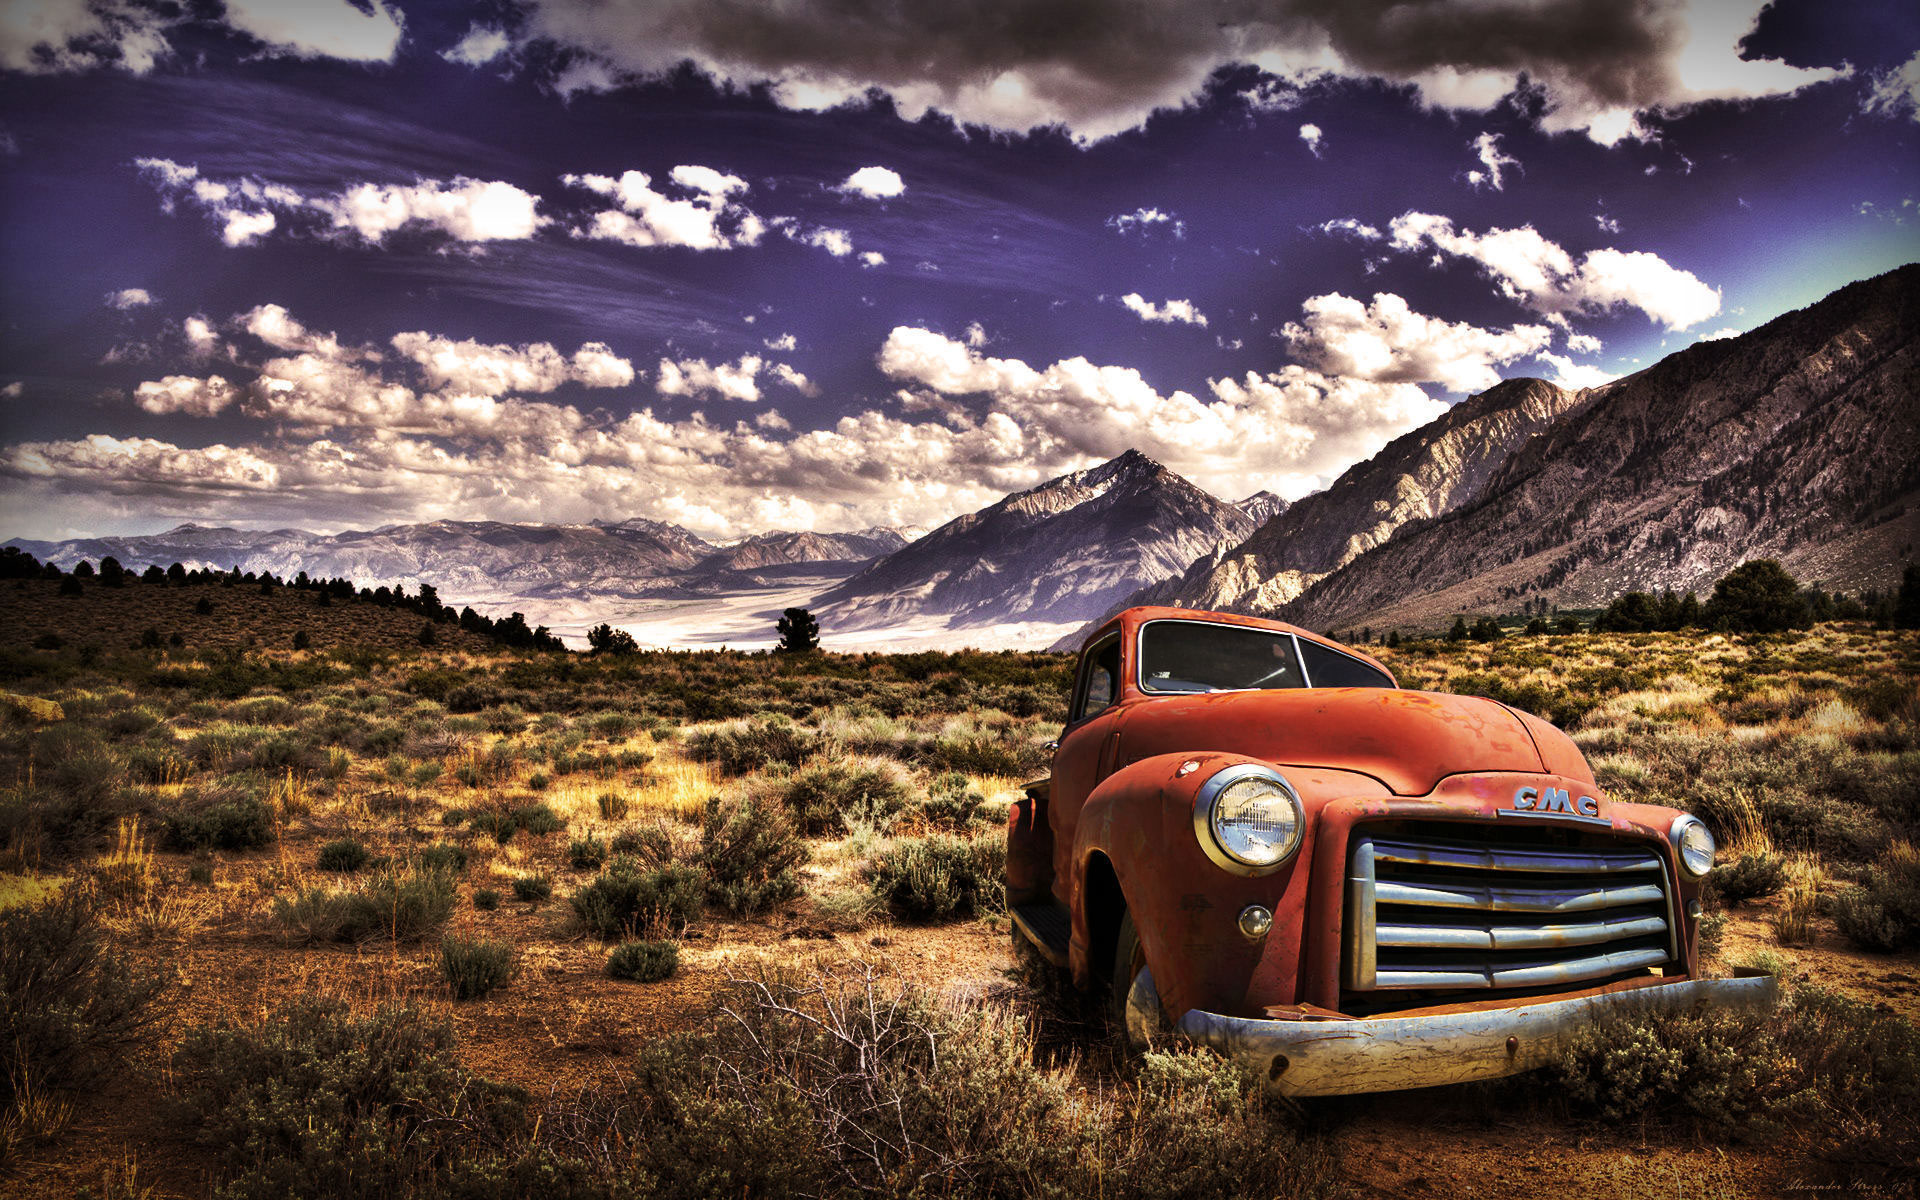 Old HD Wallpapers - Old Truck PNG HD